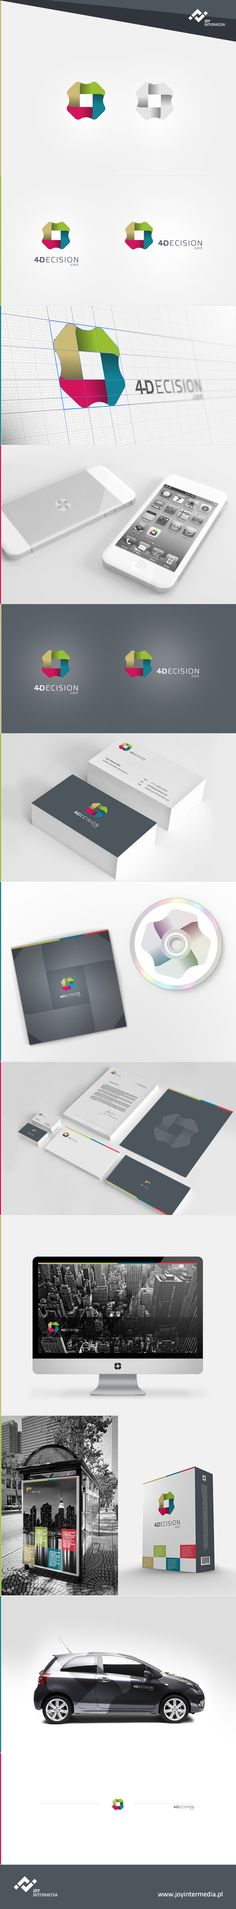 4Decision for Banfi by Piotr Kozak, via Behance